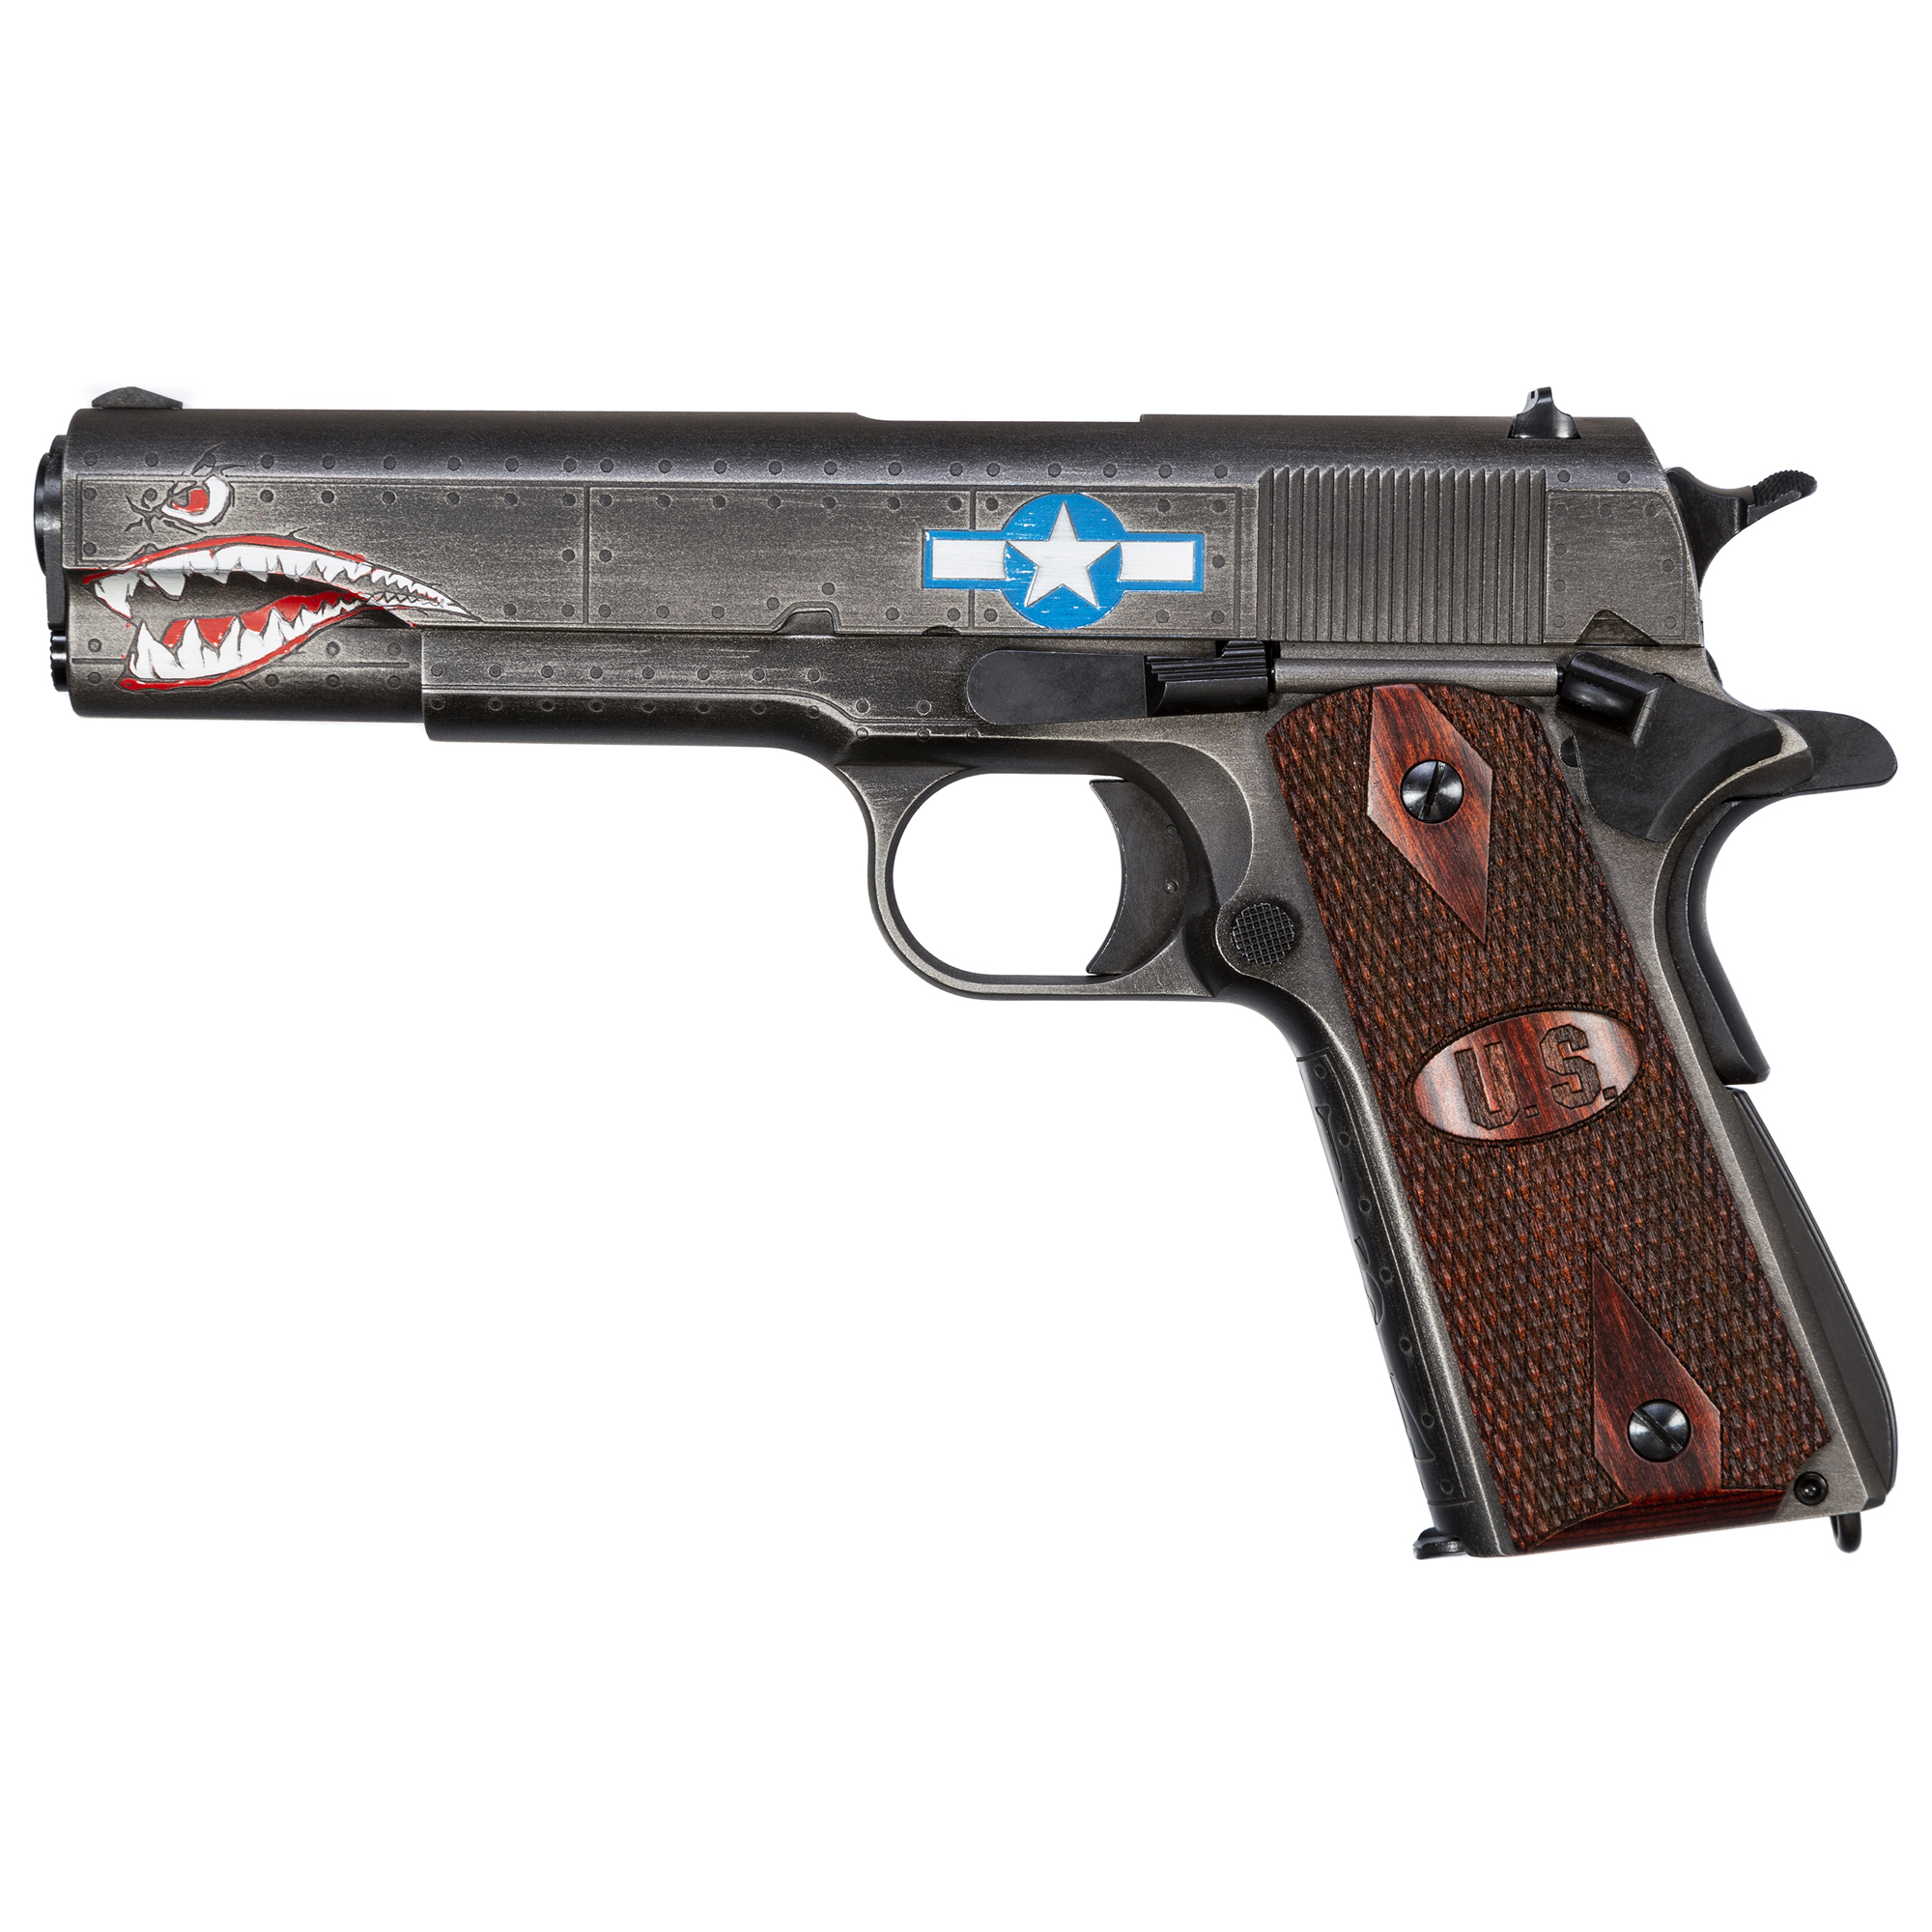 "The latest custom 1911 in Auto-Ordnance's WWII commemorative series is the ""Squadron"" model. This pistol features custom graphics reminiscent of those painted on fighter aircraft during the war."